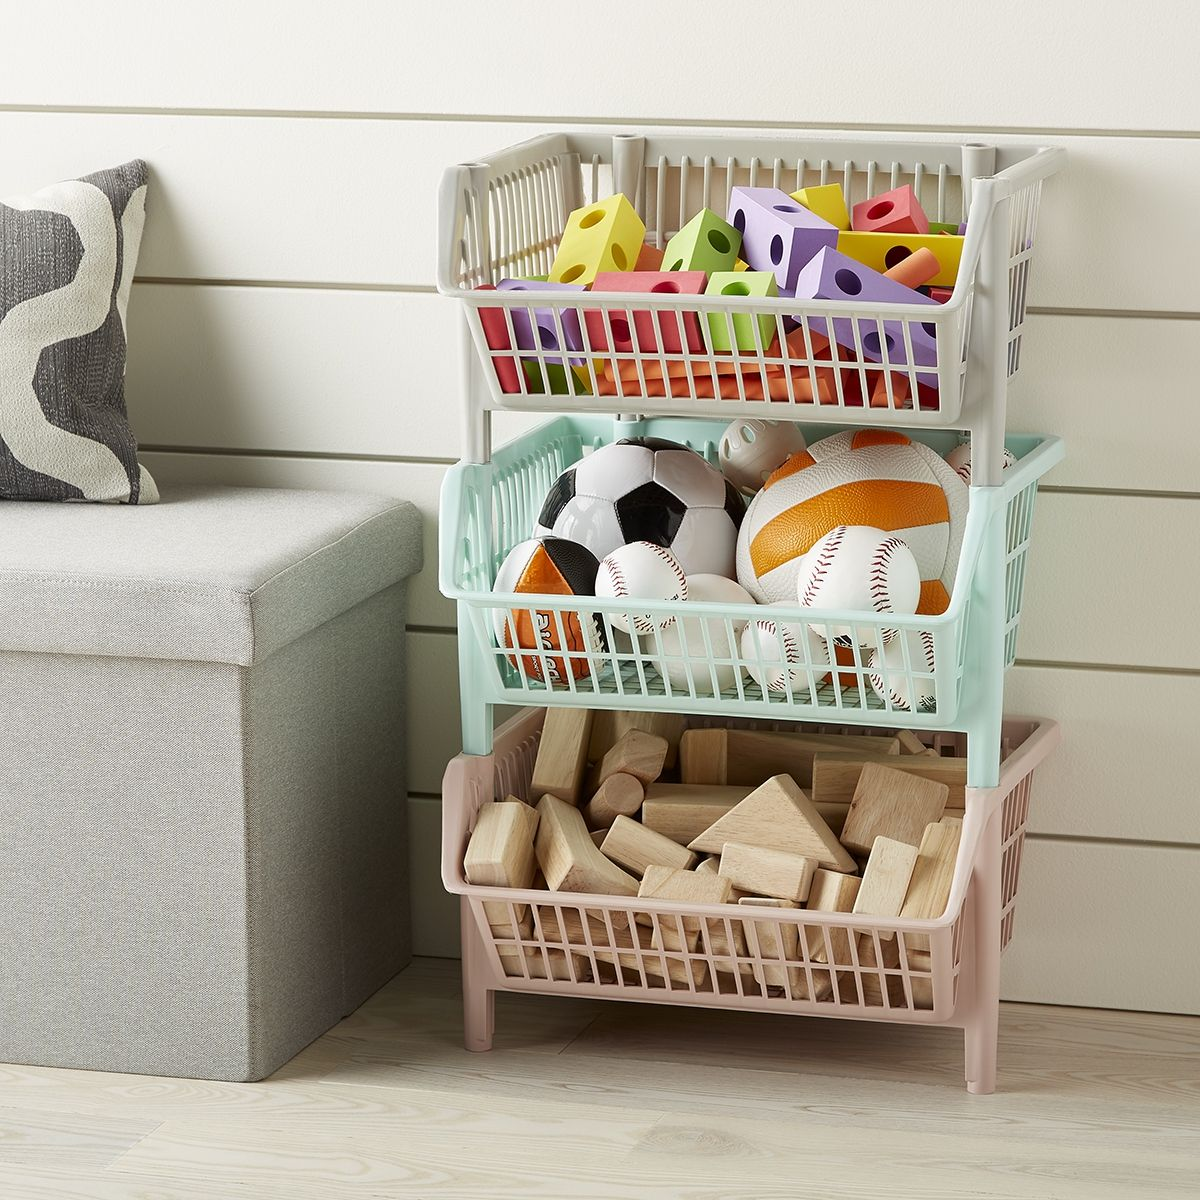 Tackle Wasted Space Without Taking Up A Large Footprint In Your Space Plastic Stacking Baskets Are Great Fo Toy Rooms Stackable Baskets Kids Room Organization